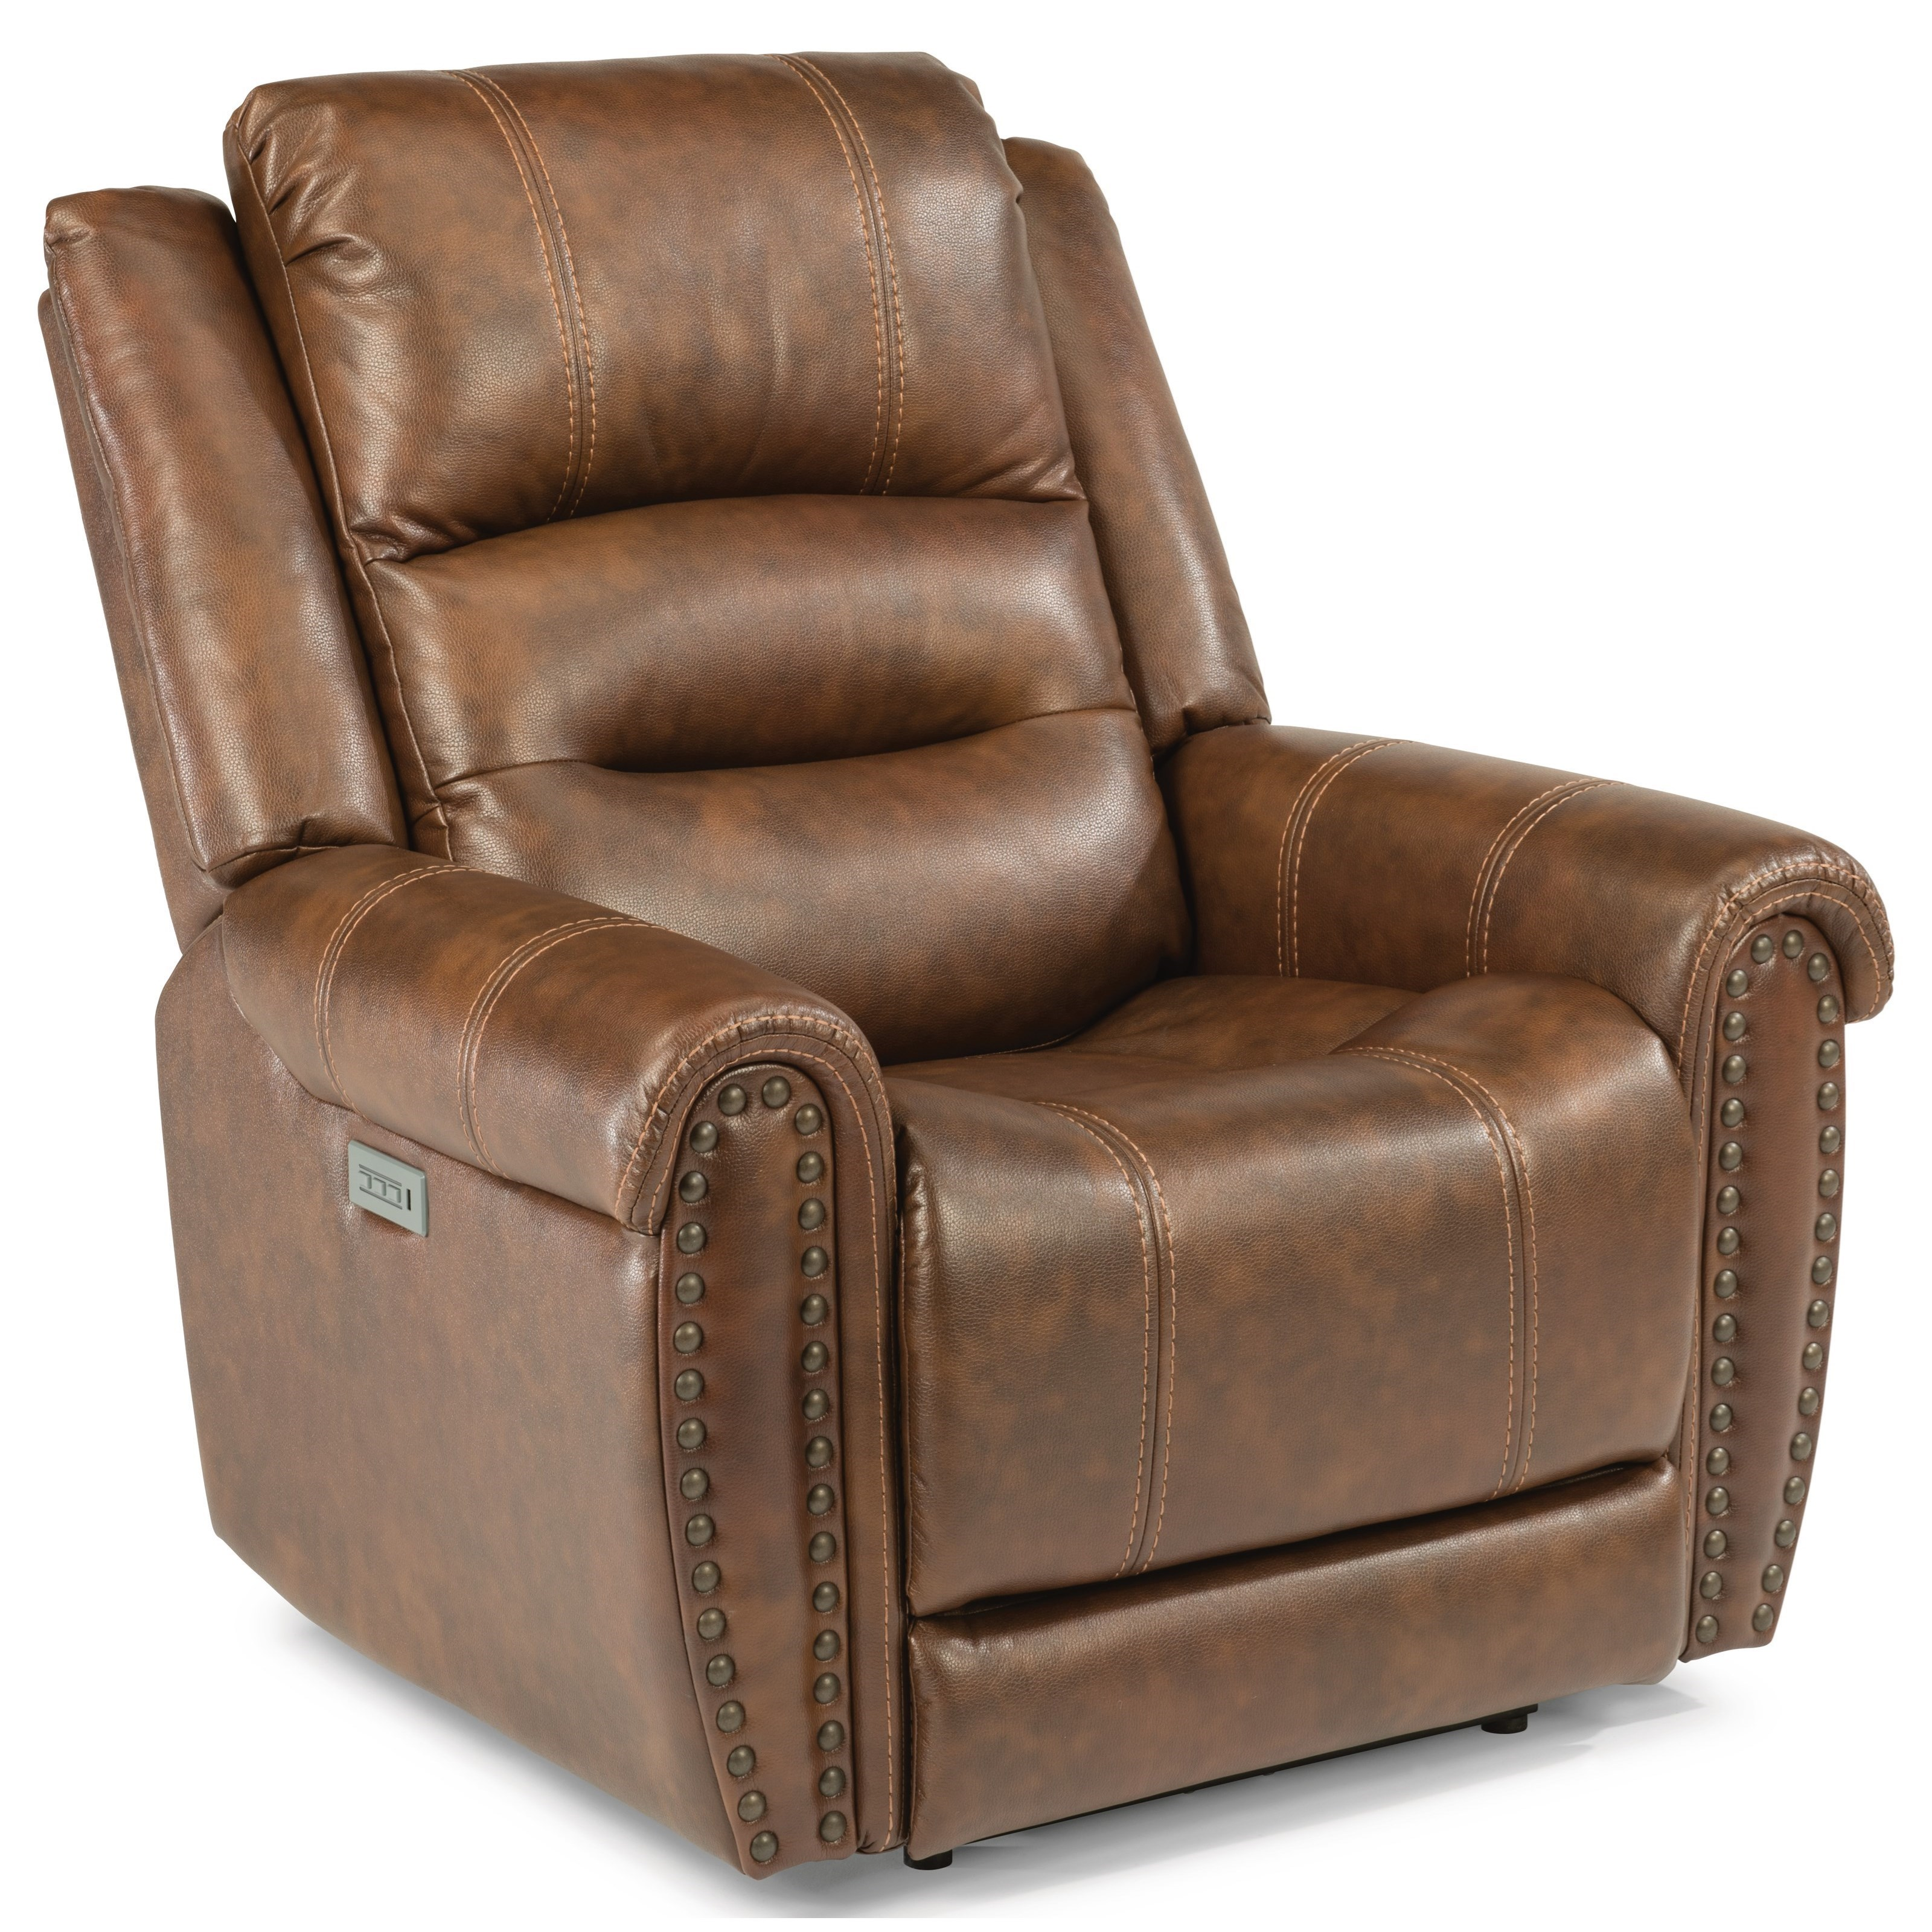 Merveilleux Flexsteel Latitudes   OscarPower Recliner With Power Headrest